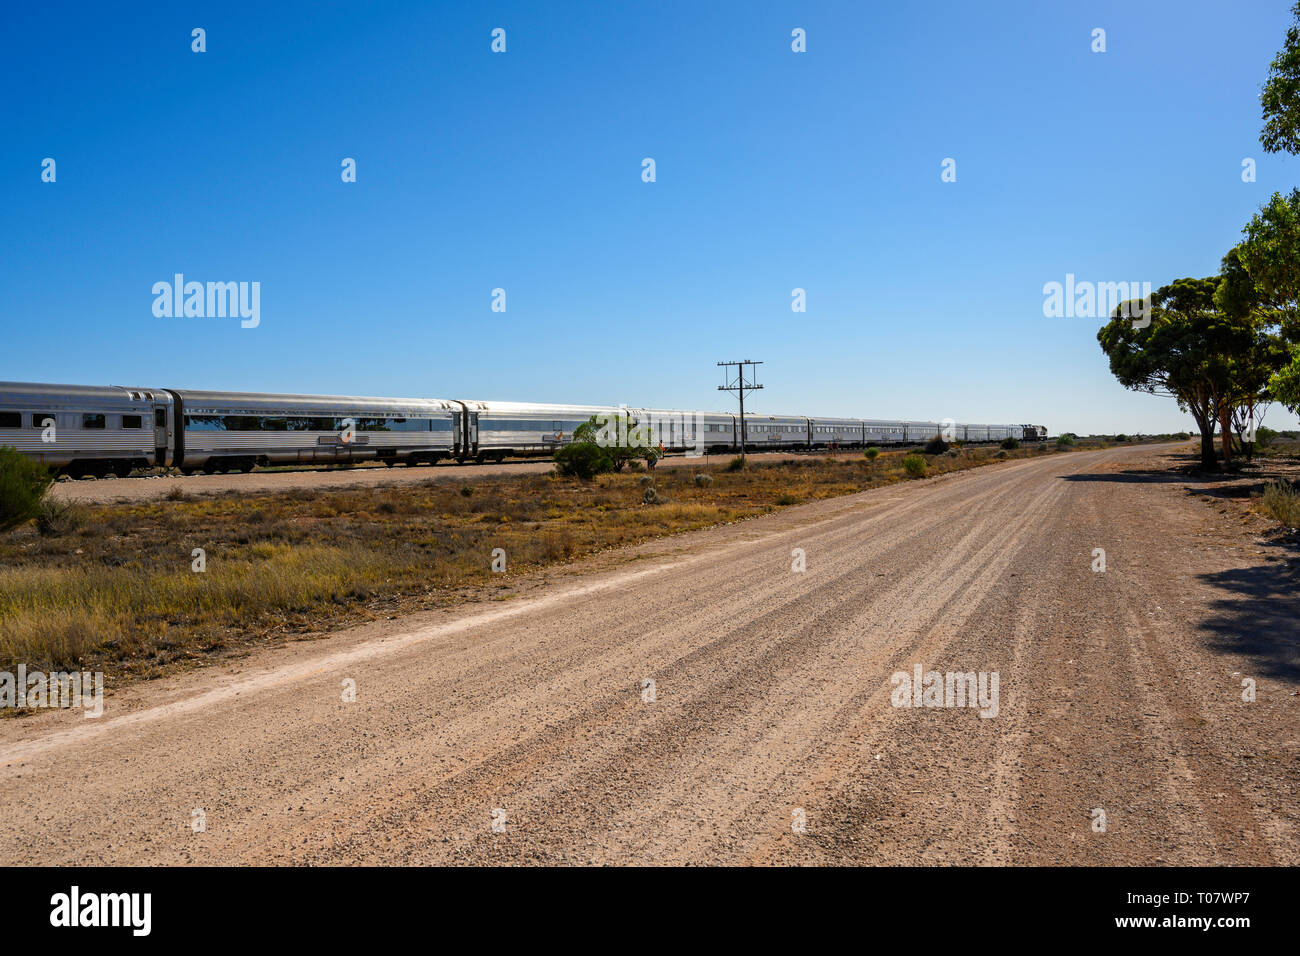 The Indian Pacific train service between Perth and Sydney, Australia, is seen at a stop at Rawlinna, Western Australia. Stock Photo